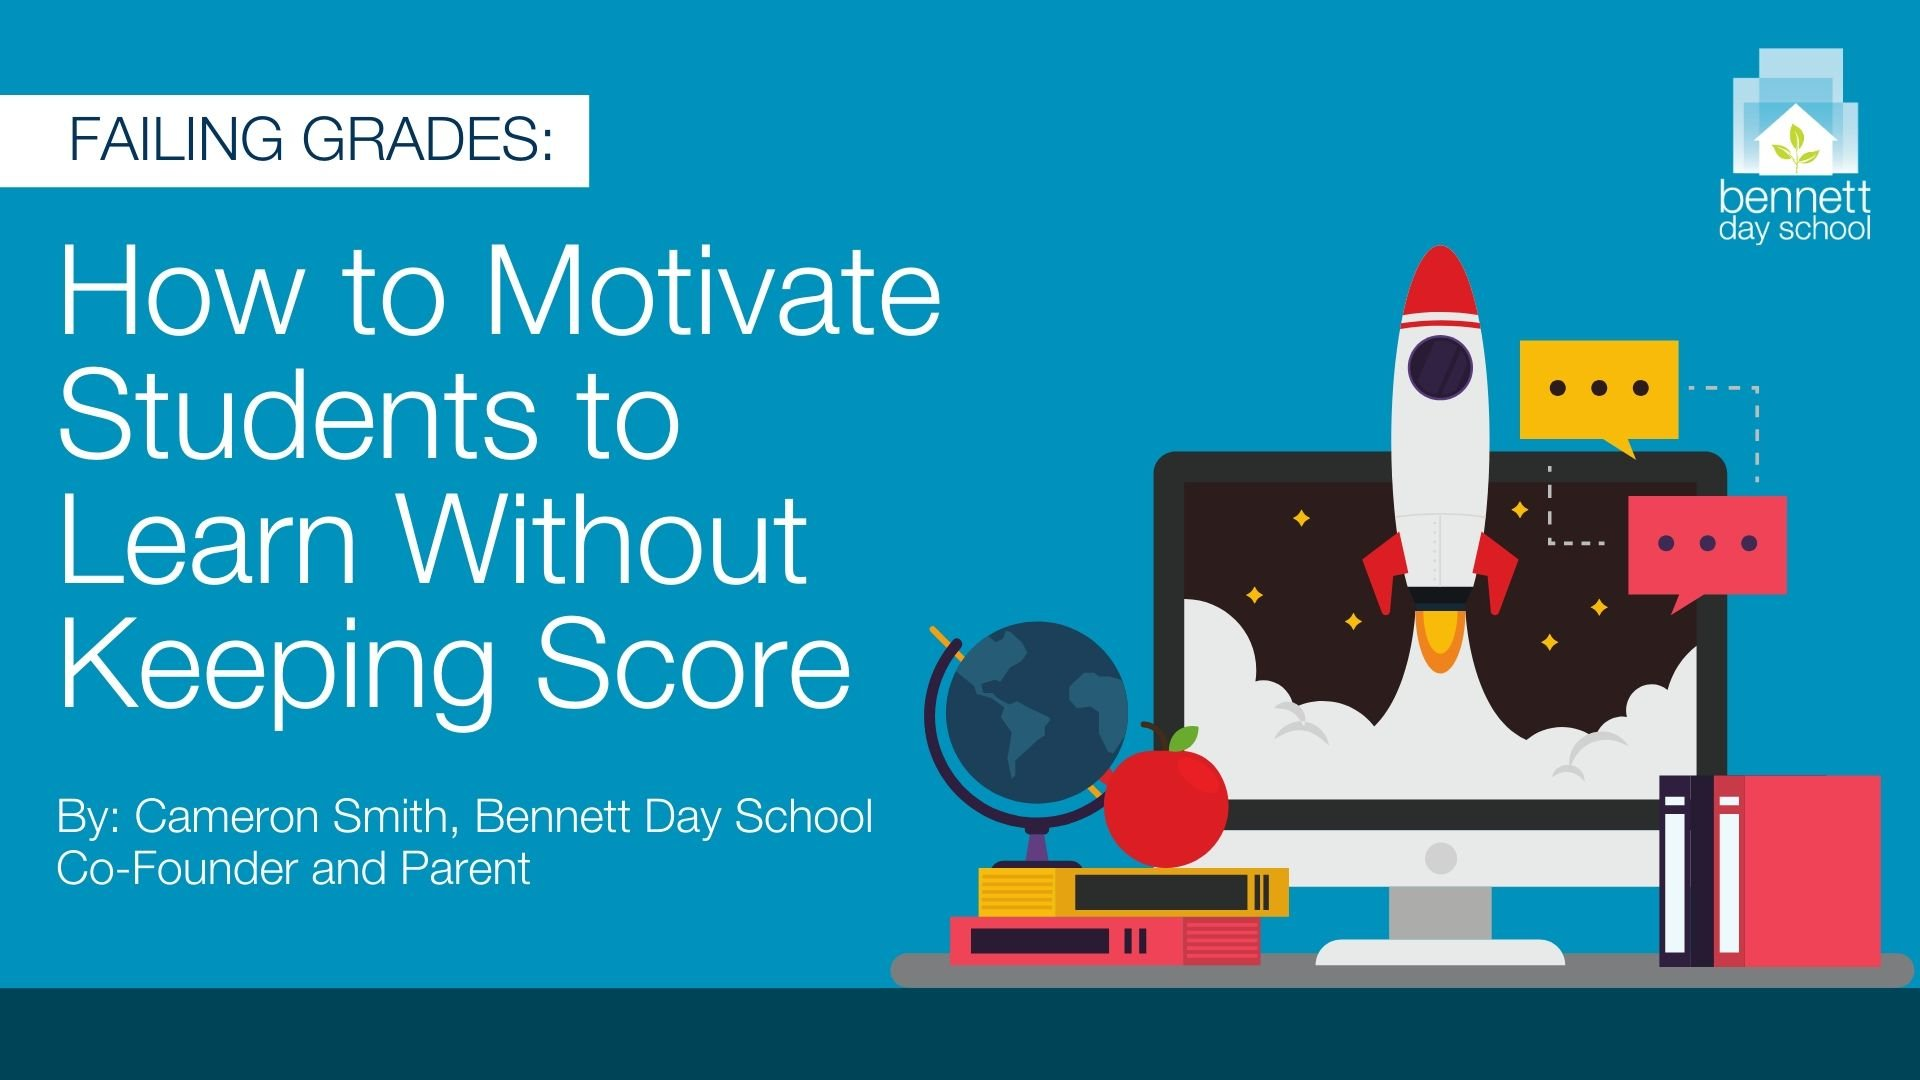 Failing Grades: How to Motivate Students to Learn Without Keeping Score